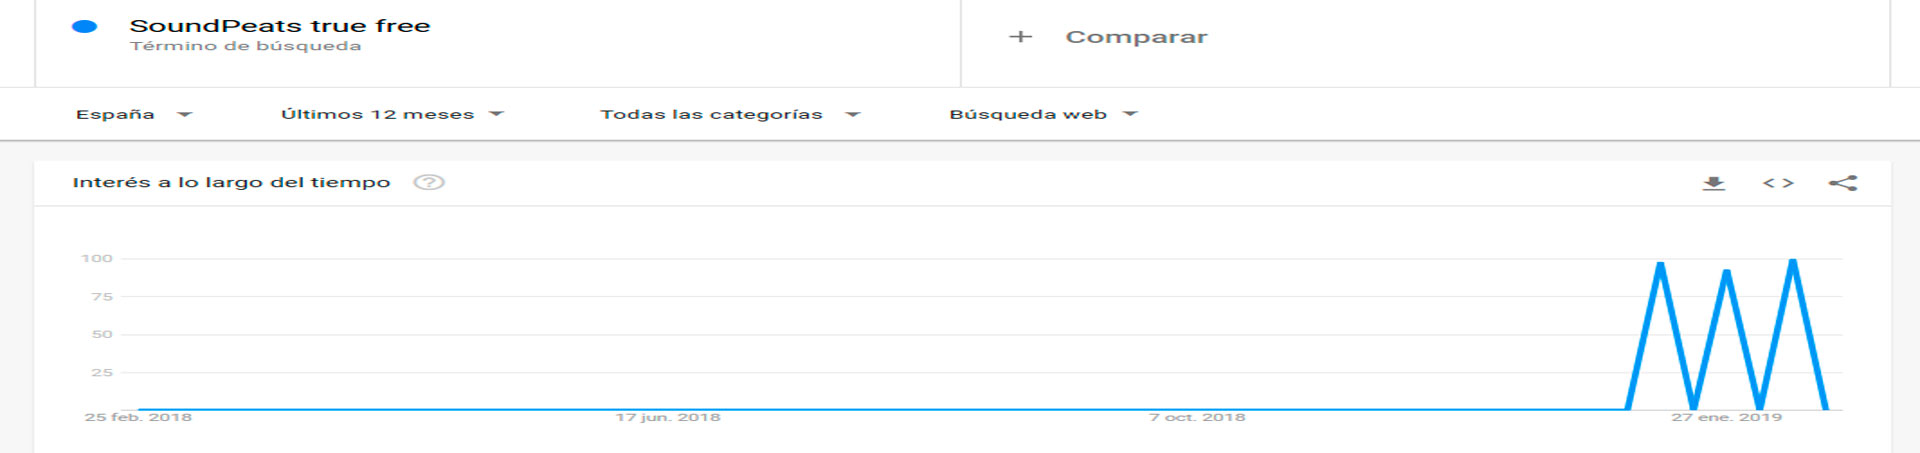 SoundPeats-true-free-estadisticas-de-compra-google-trends